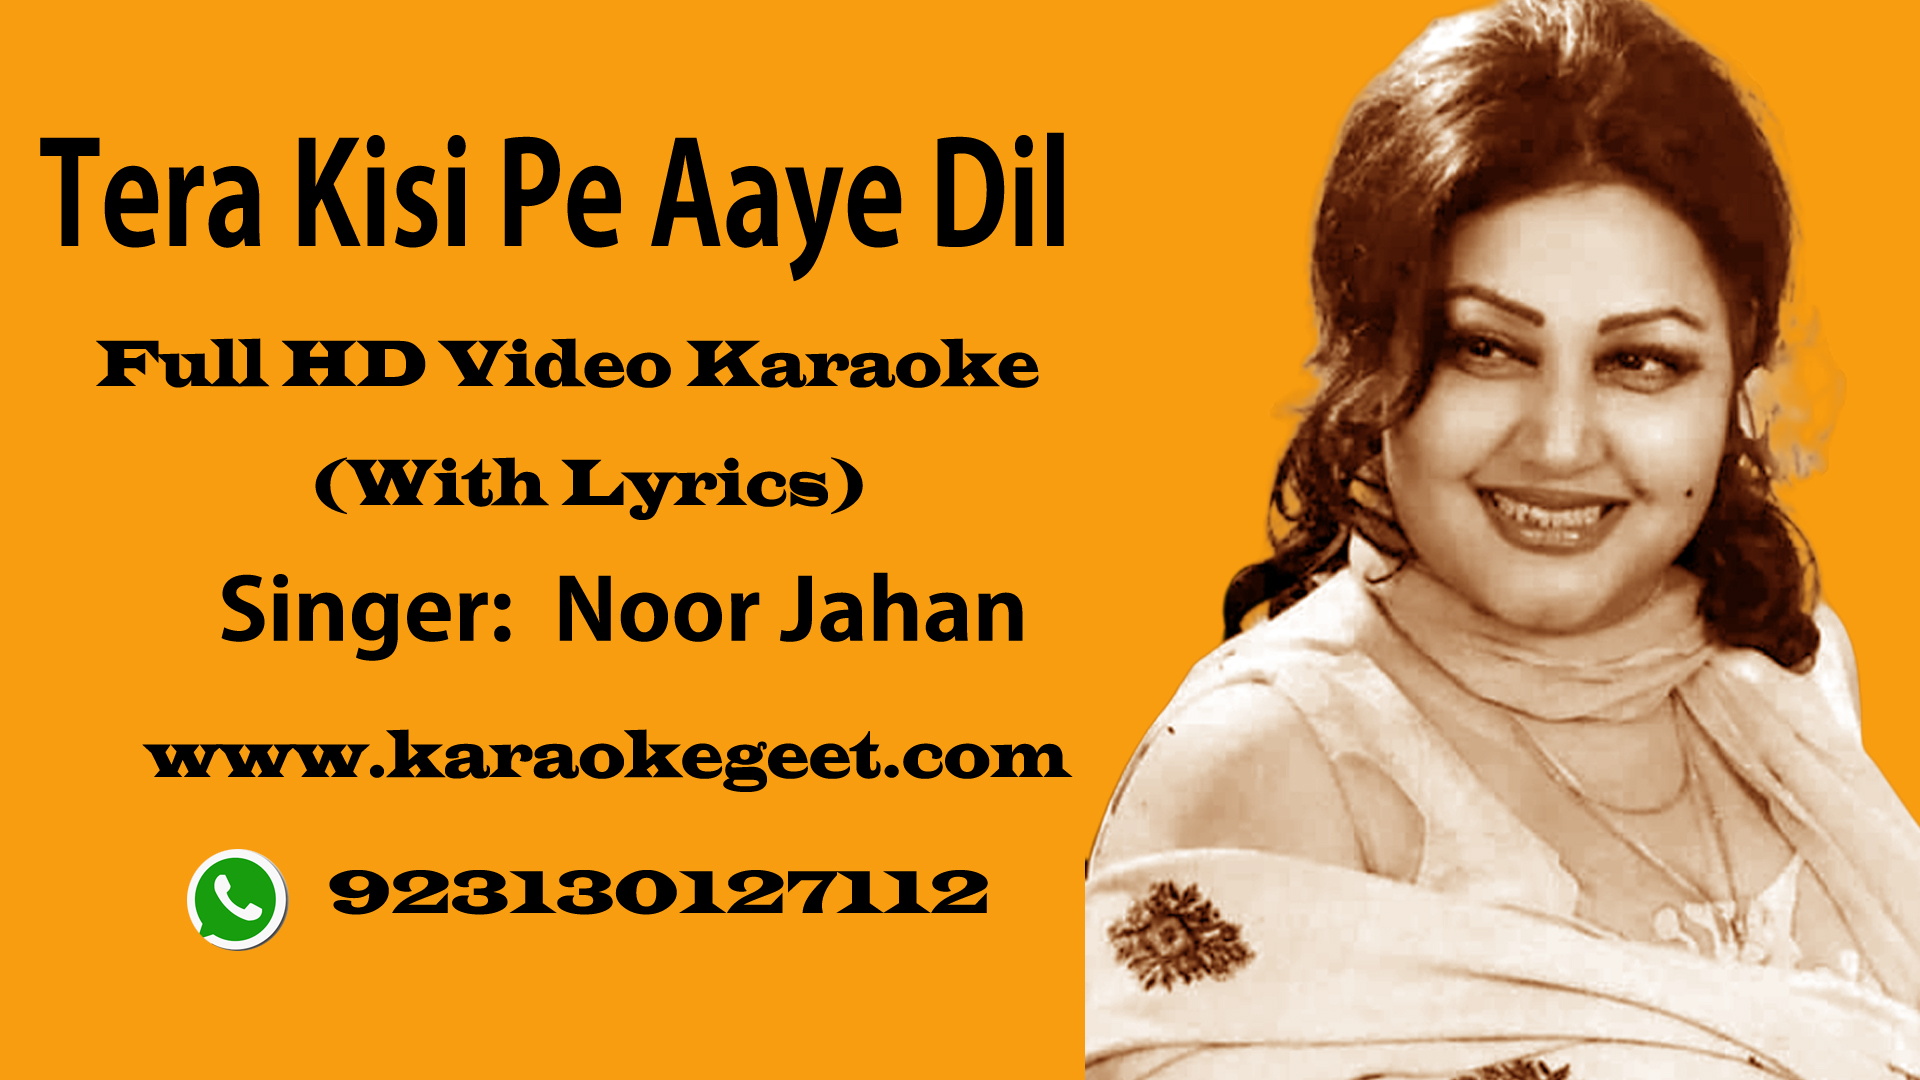 Tera kisi pe aye dil Video Karaoke